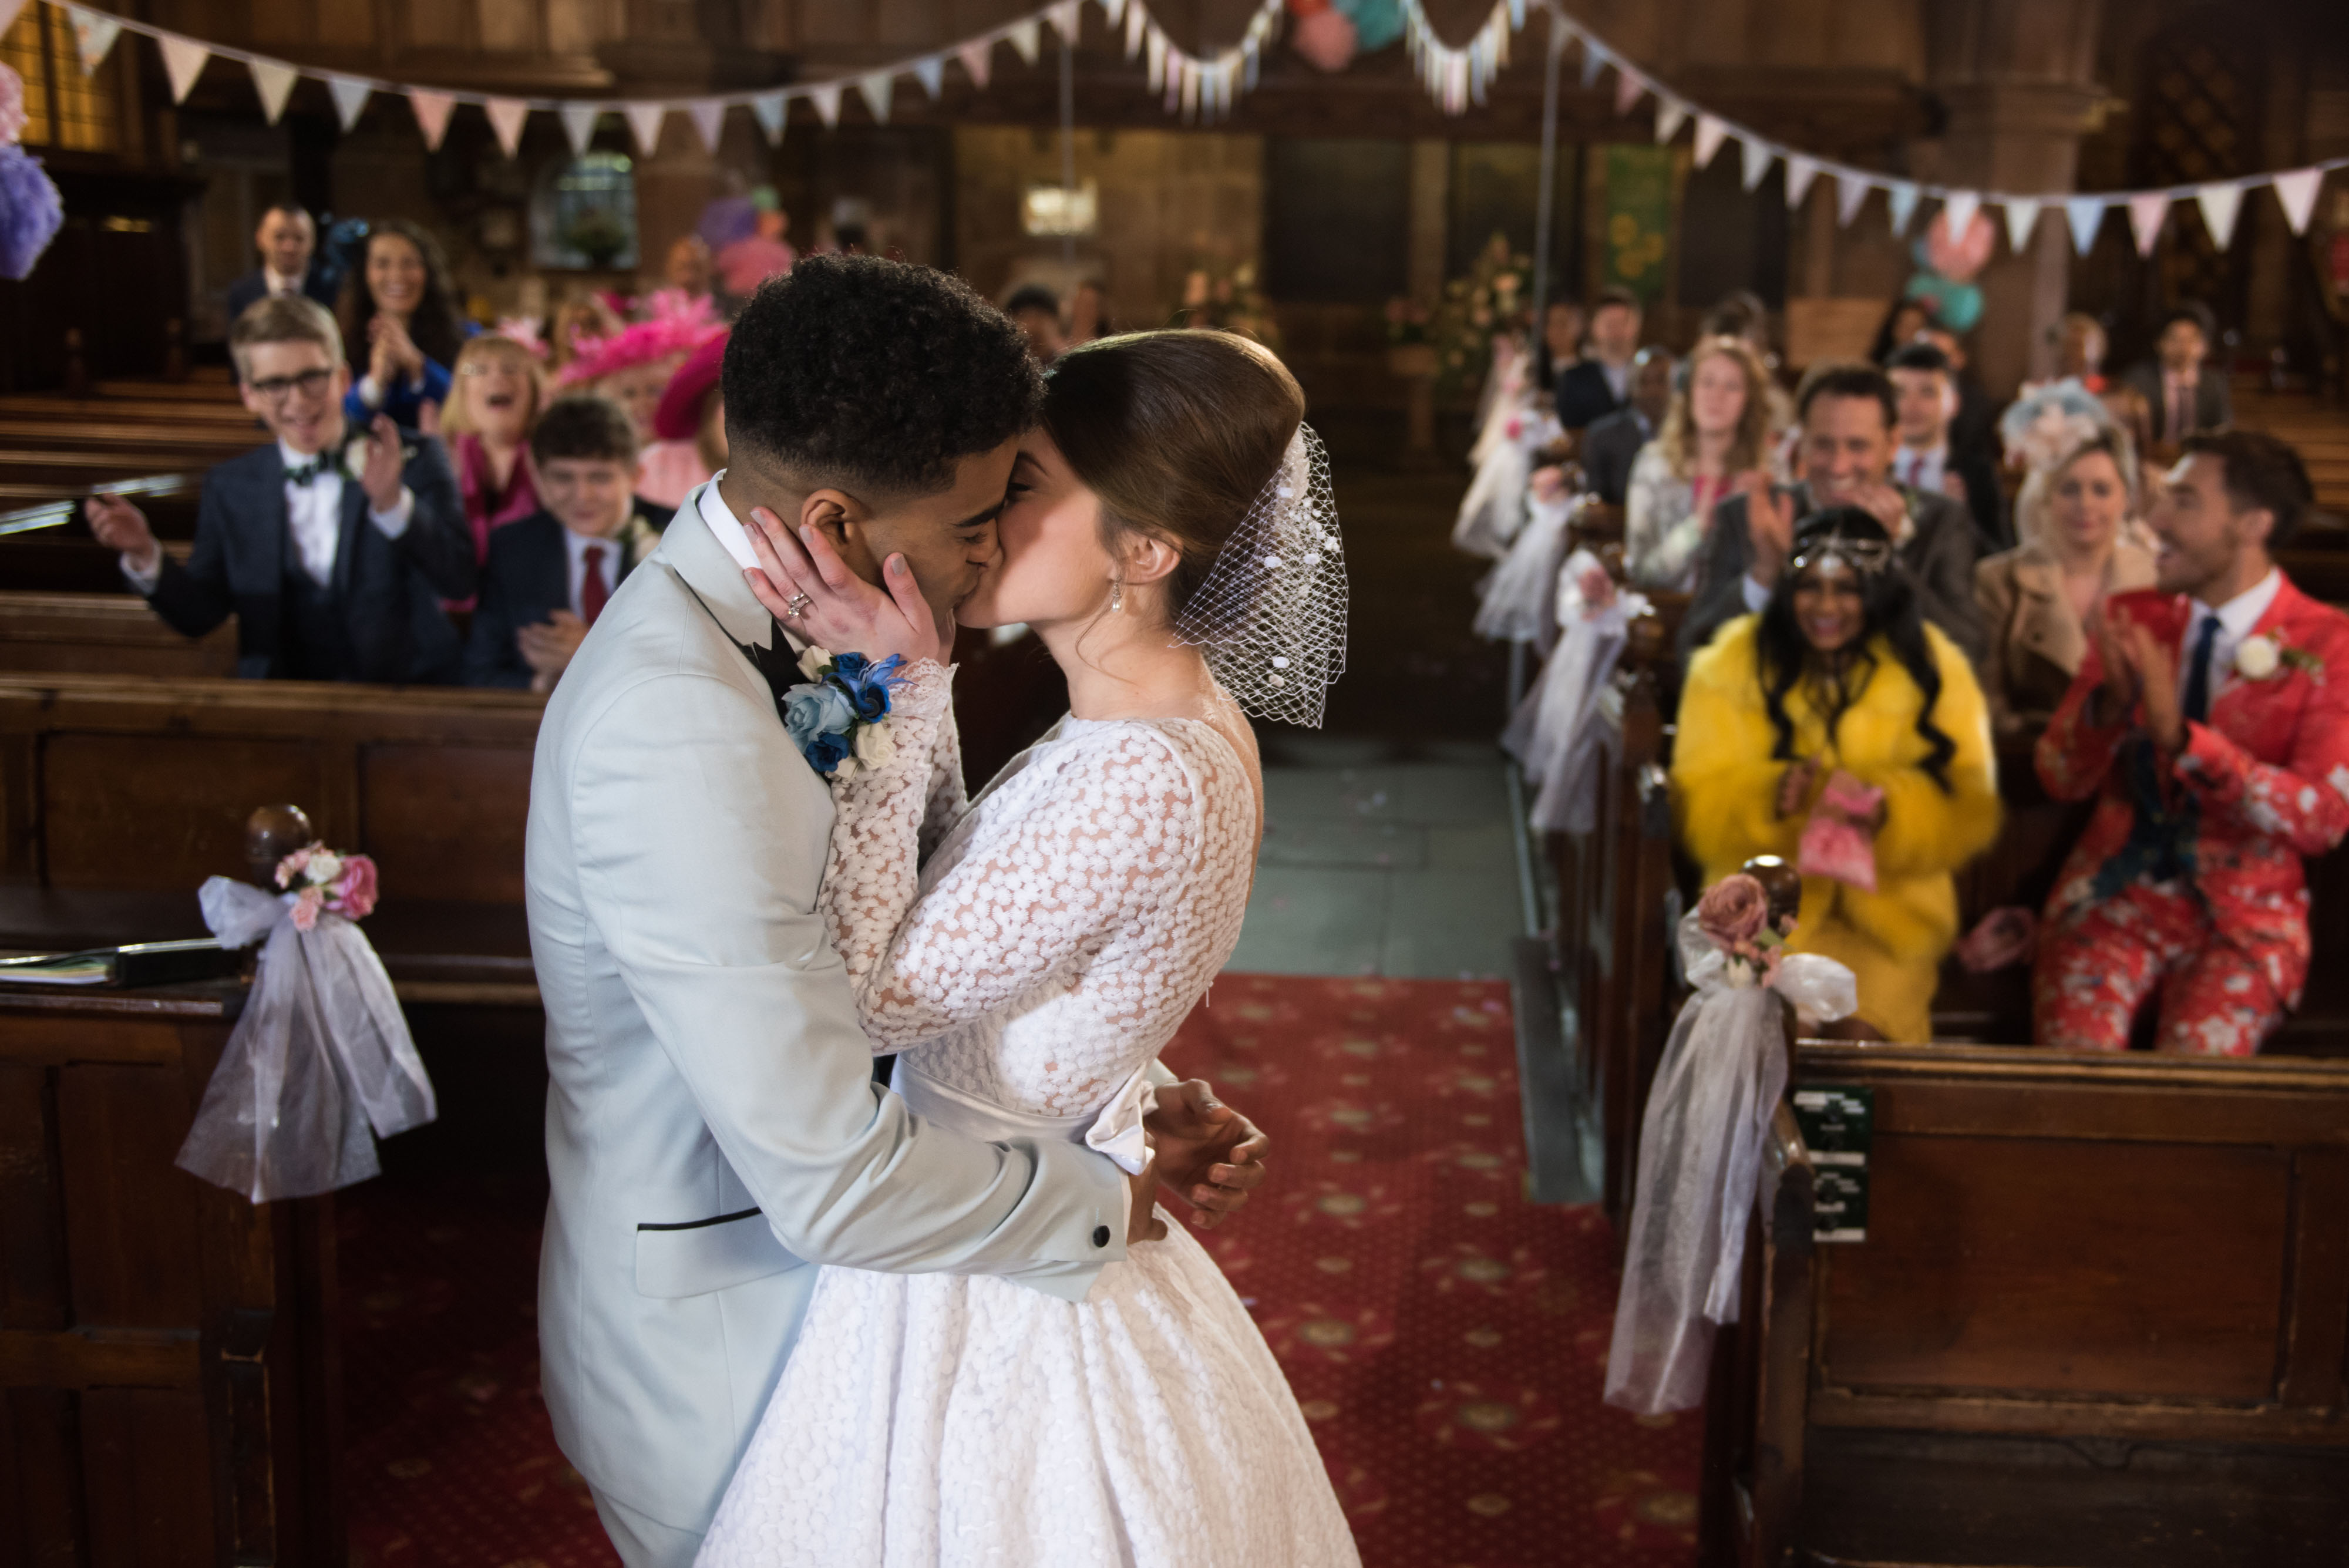 Hollyoaks spoilers: Lauren McQueen reveals new Prince and Lily McQueen heartache after wedding drama